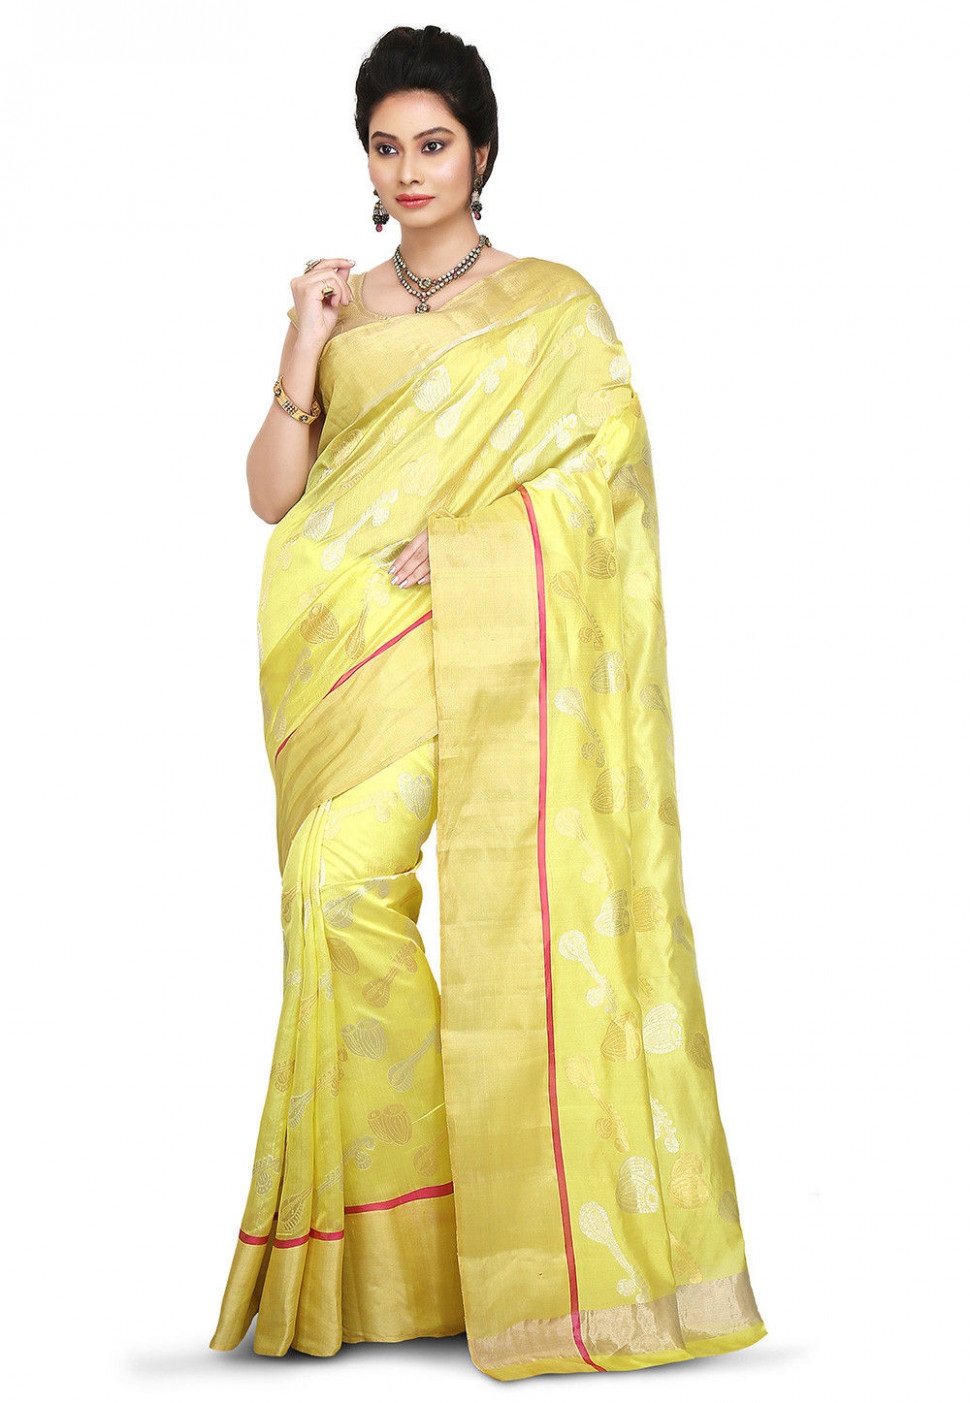 Woven Pure Chanderi Silk Saree in Light Yellow : SKBA284 - chanderi silk saree